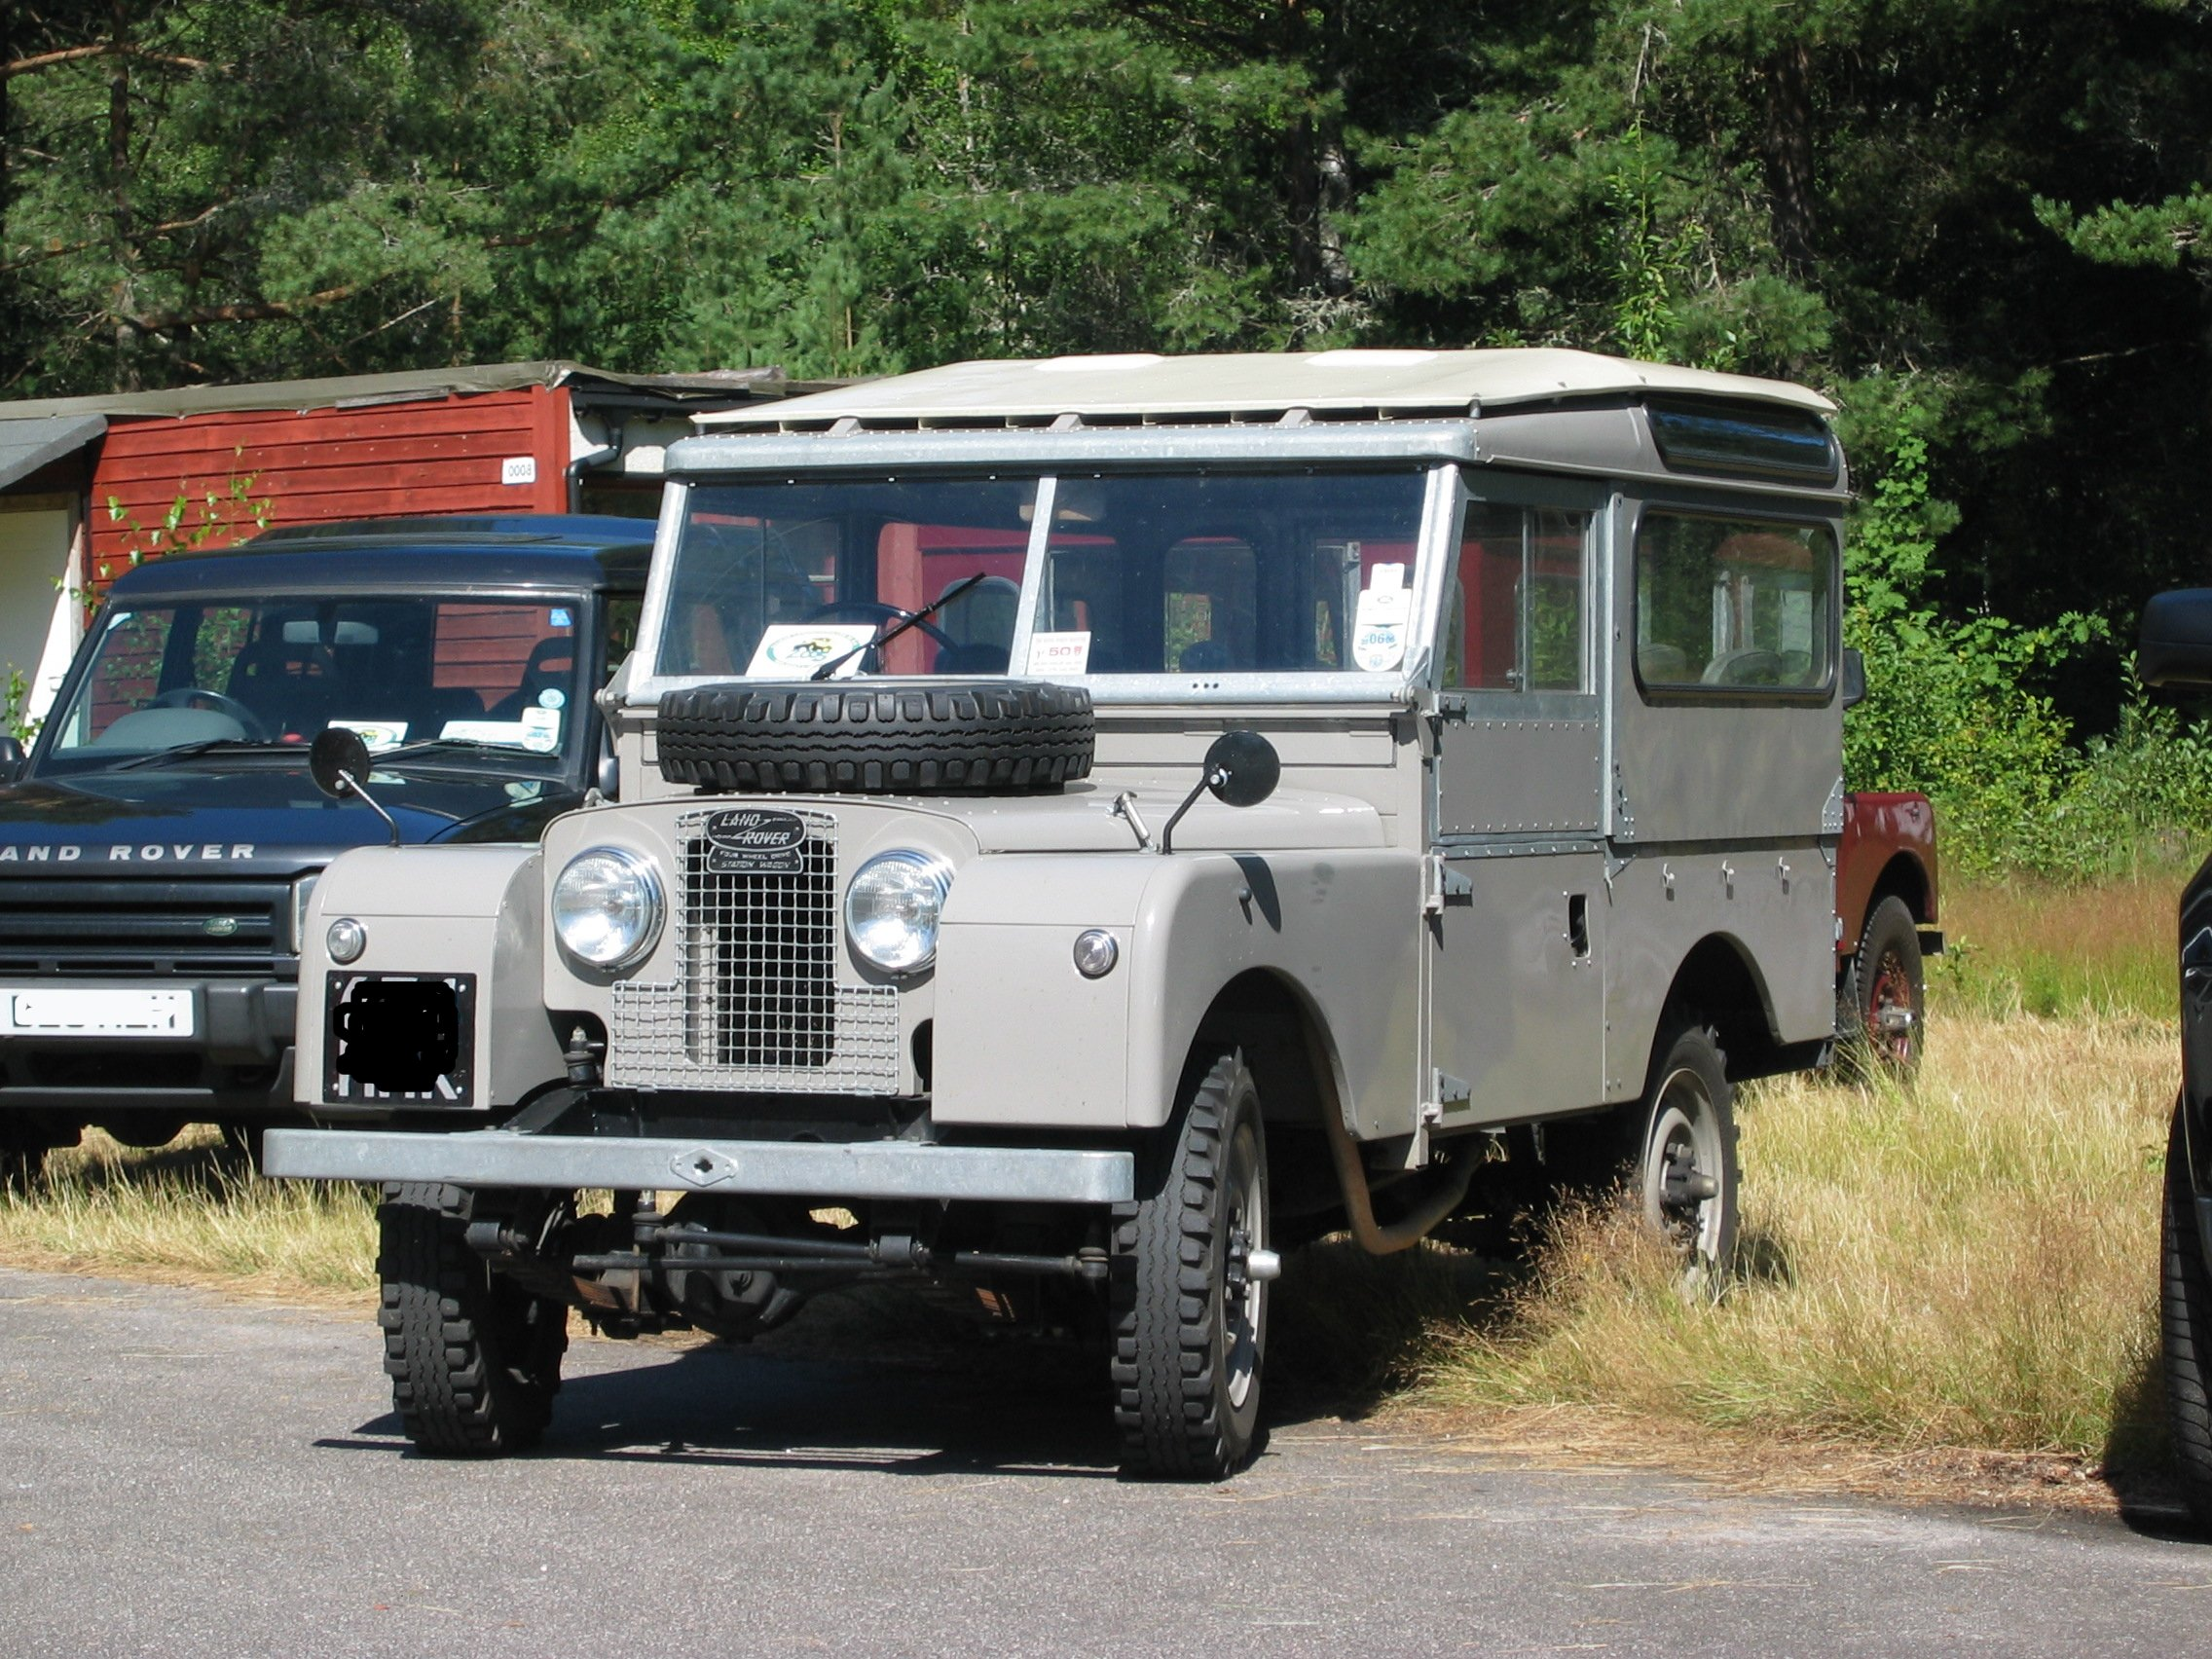 vans kxz rover vehicles landrover img defender rovers land turner used